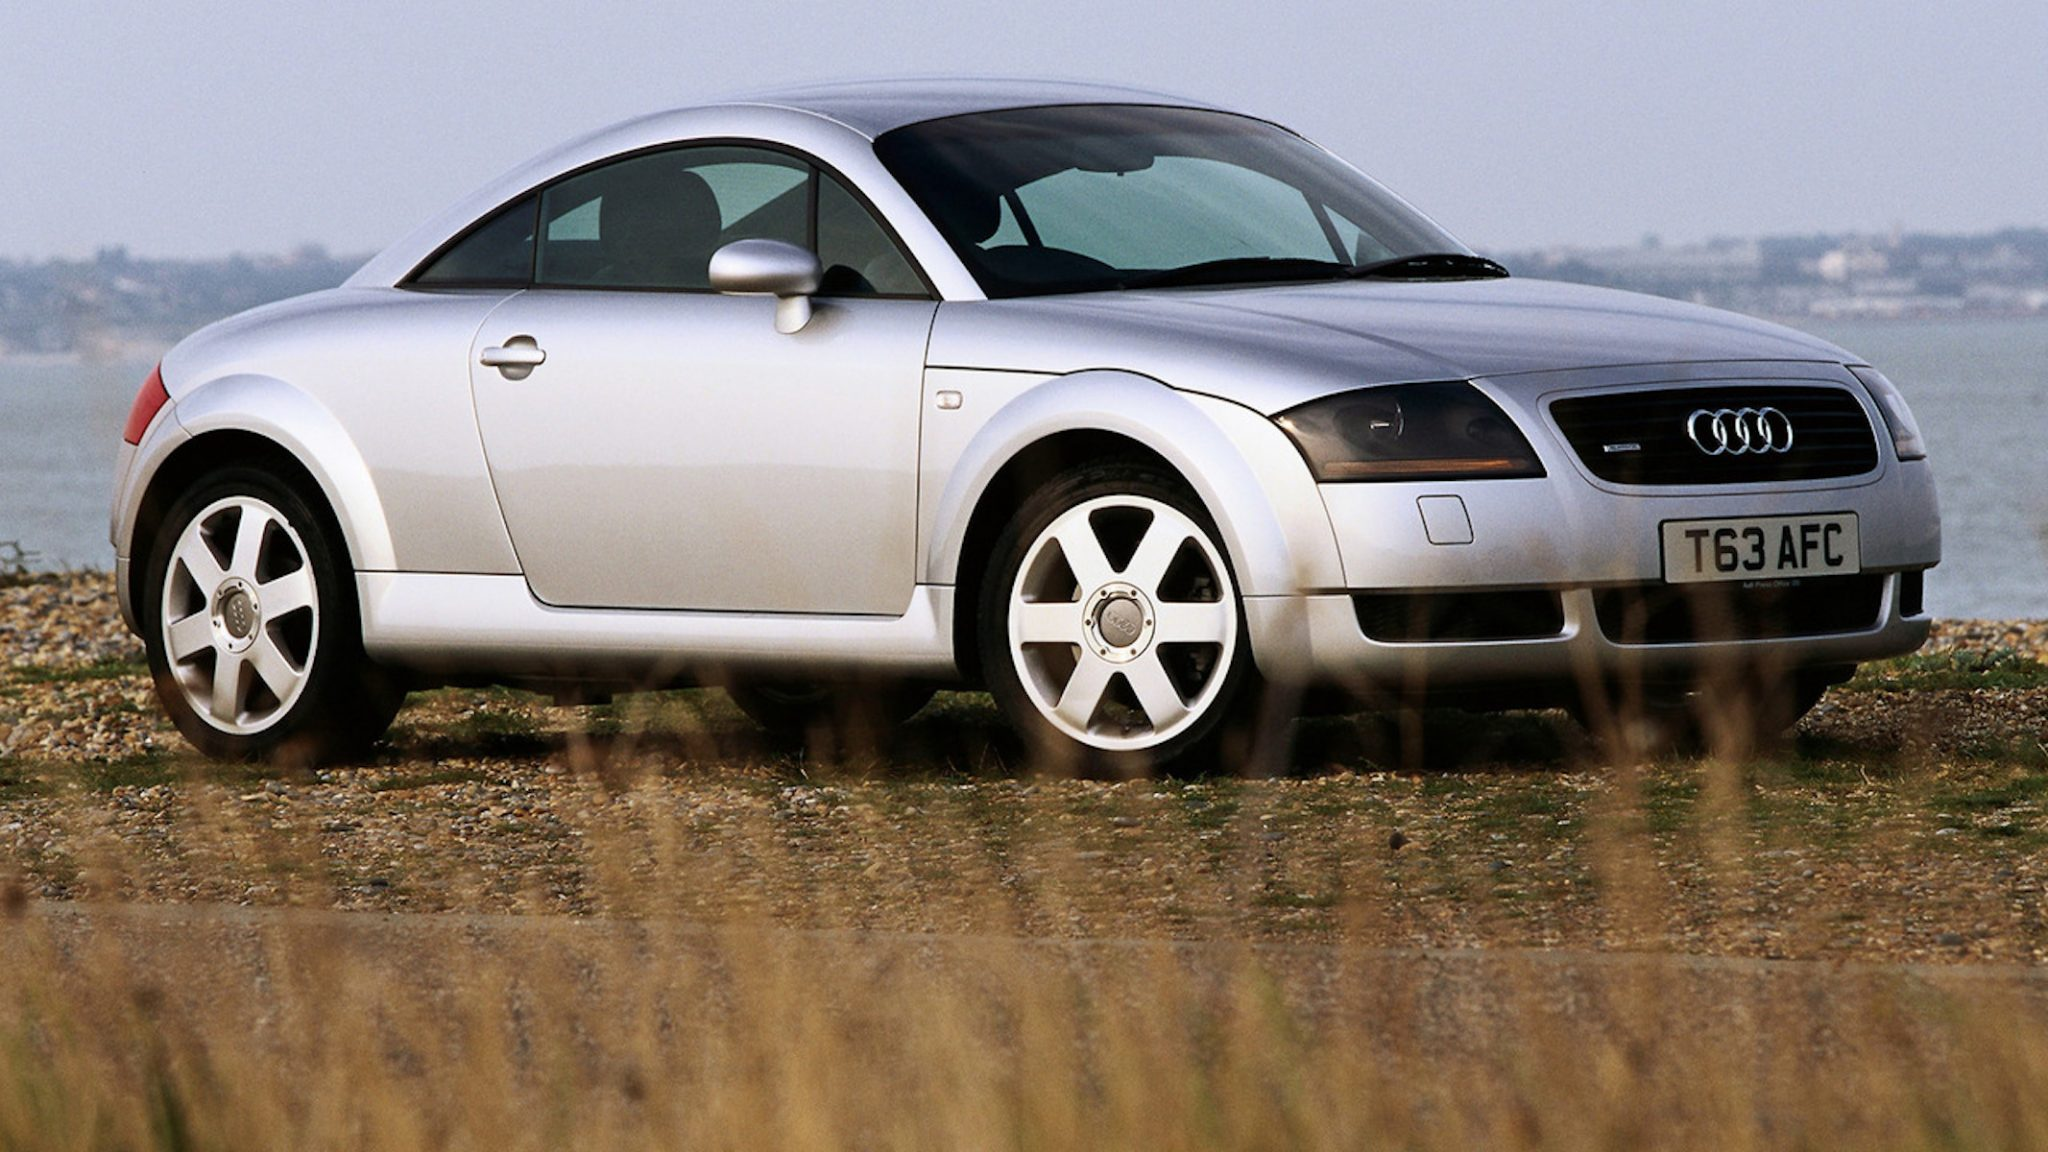 A side view of a silver First Gen Audi TT Coupe in front of a large body of water.